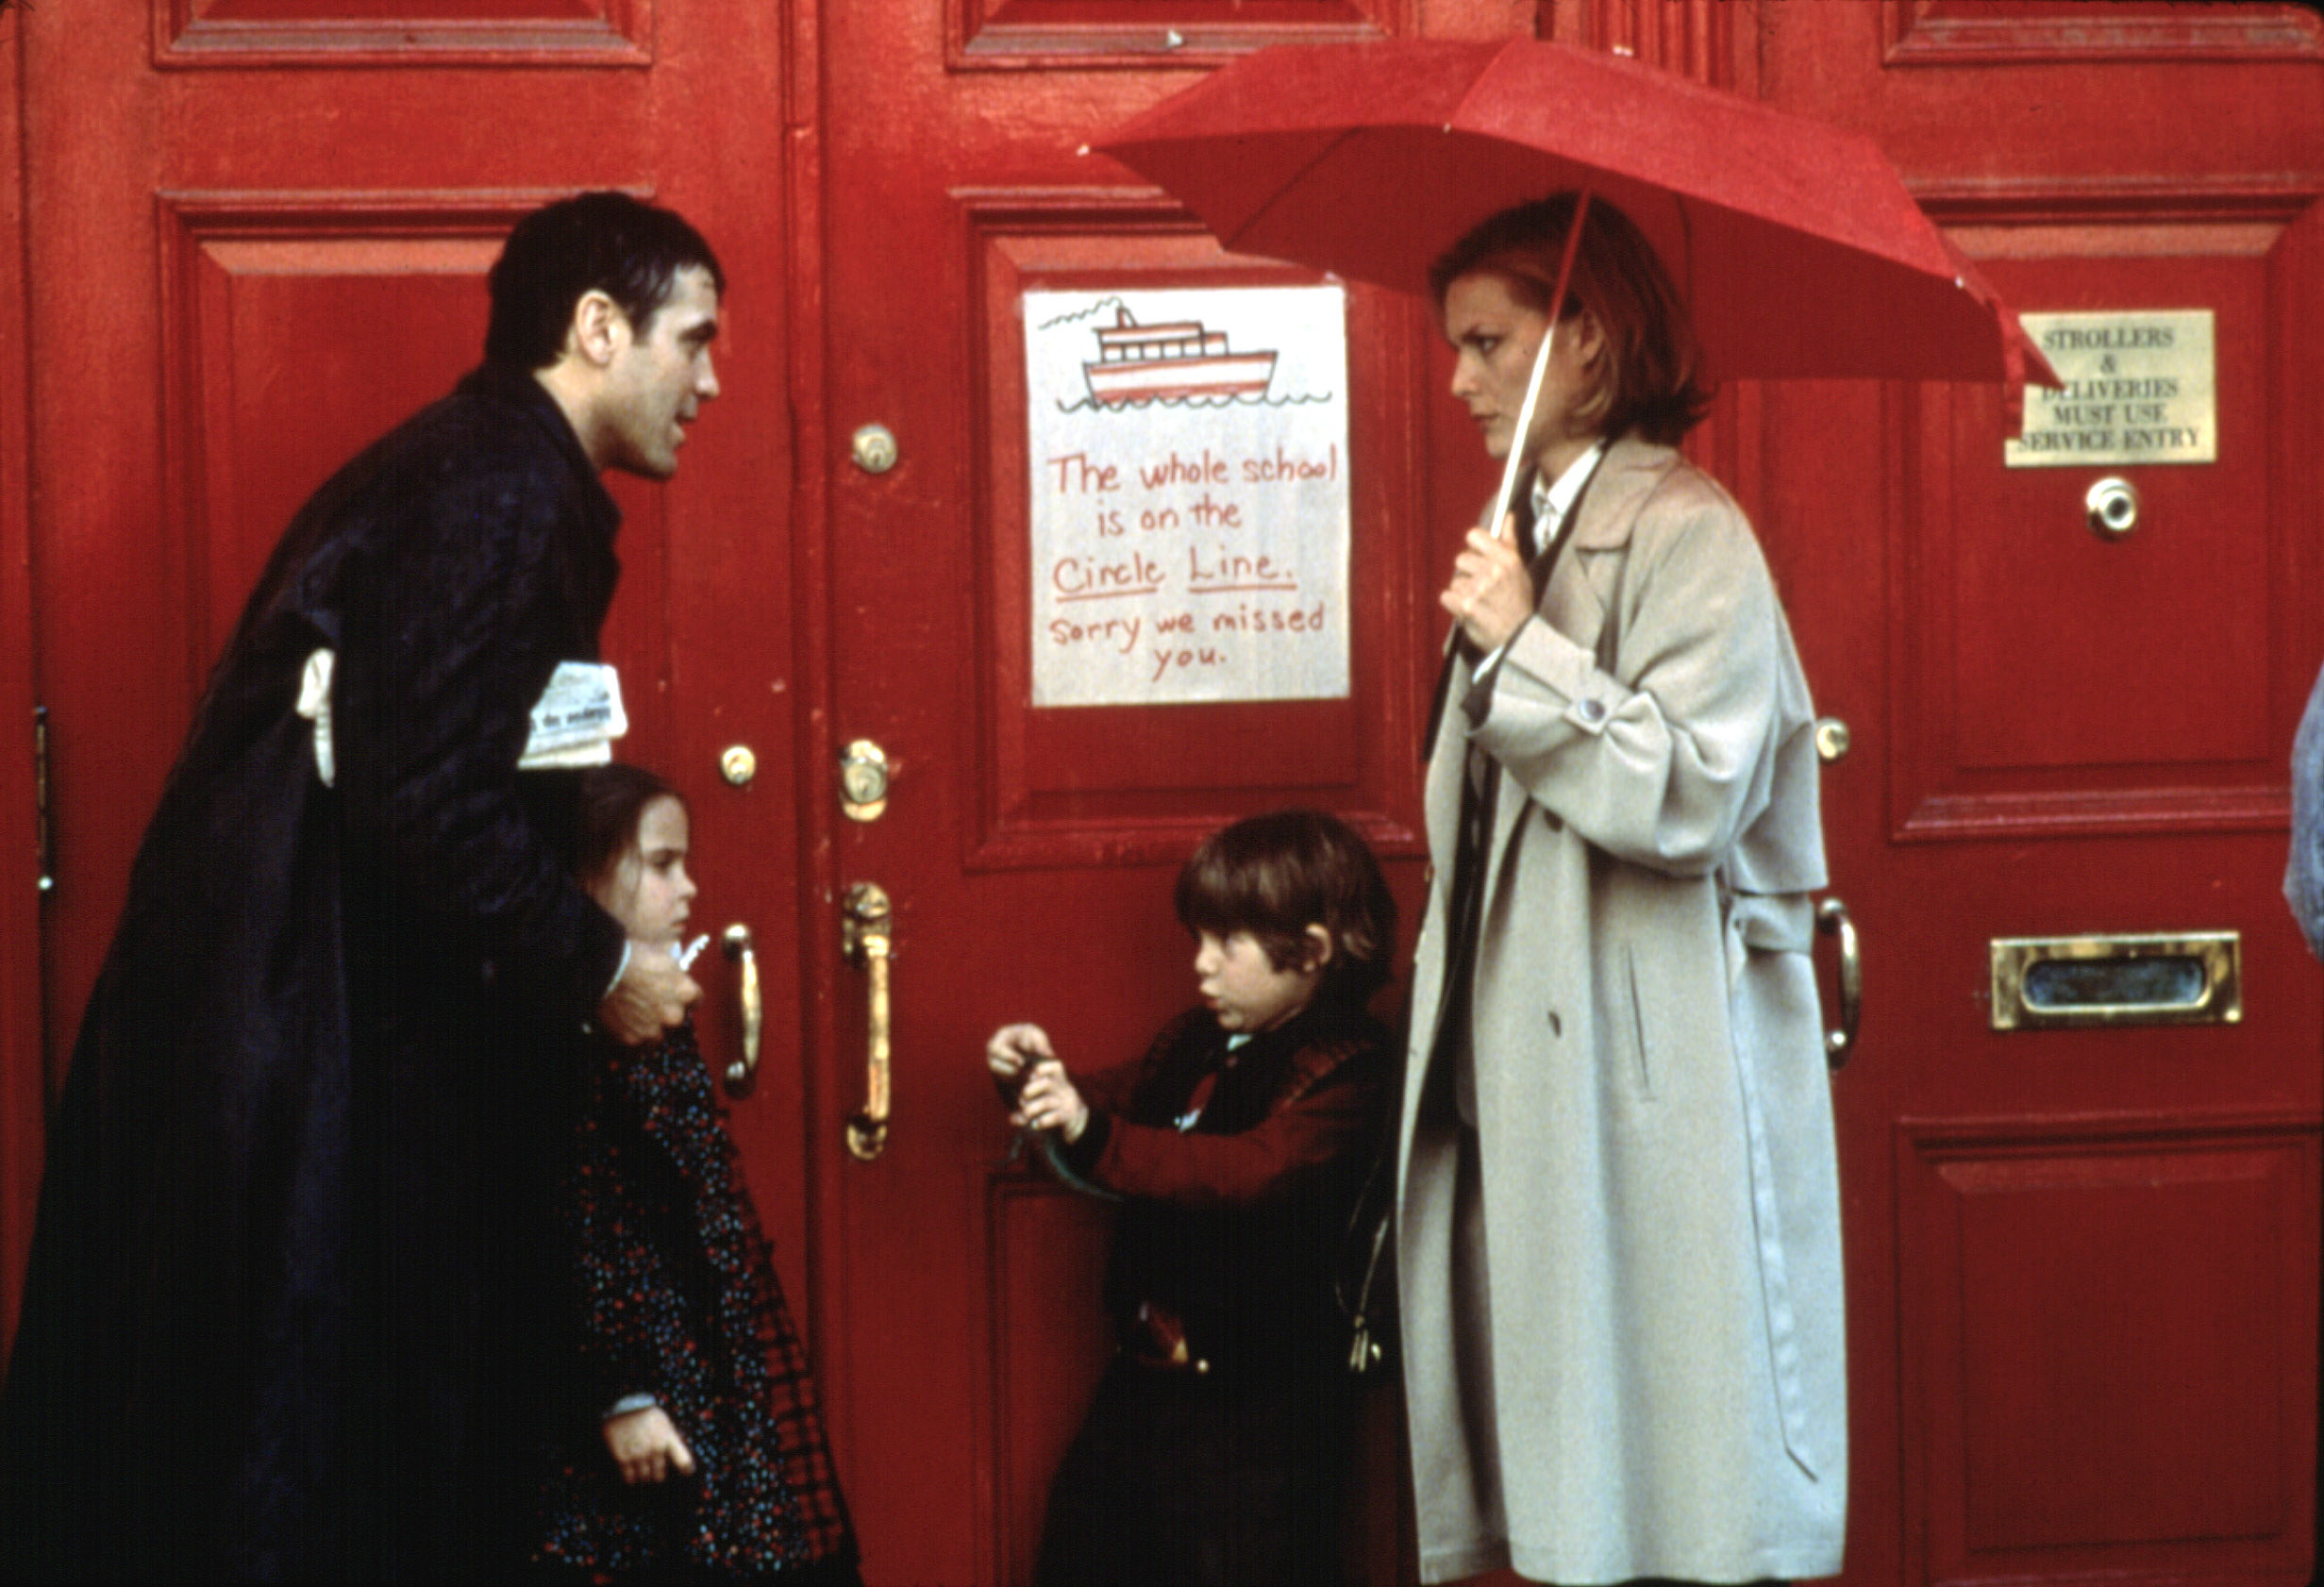 "George Clooney, Mae Whitman, Alex D. Linz, Michelle Pfeiffer standing in the rain outside of a building with a sign that says ""The whole school is on the Circle Line, Sorry We Missed You"""